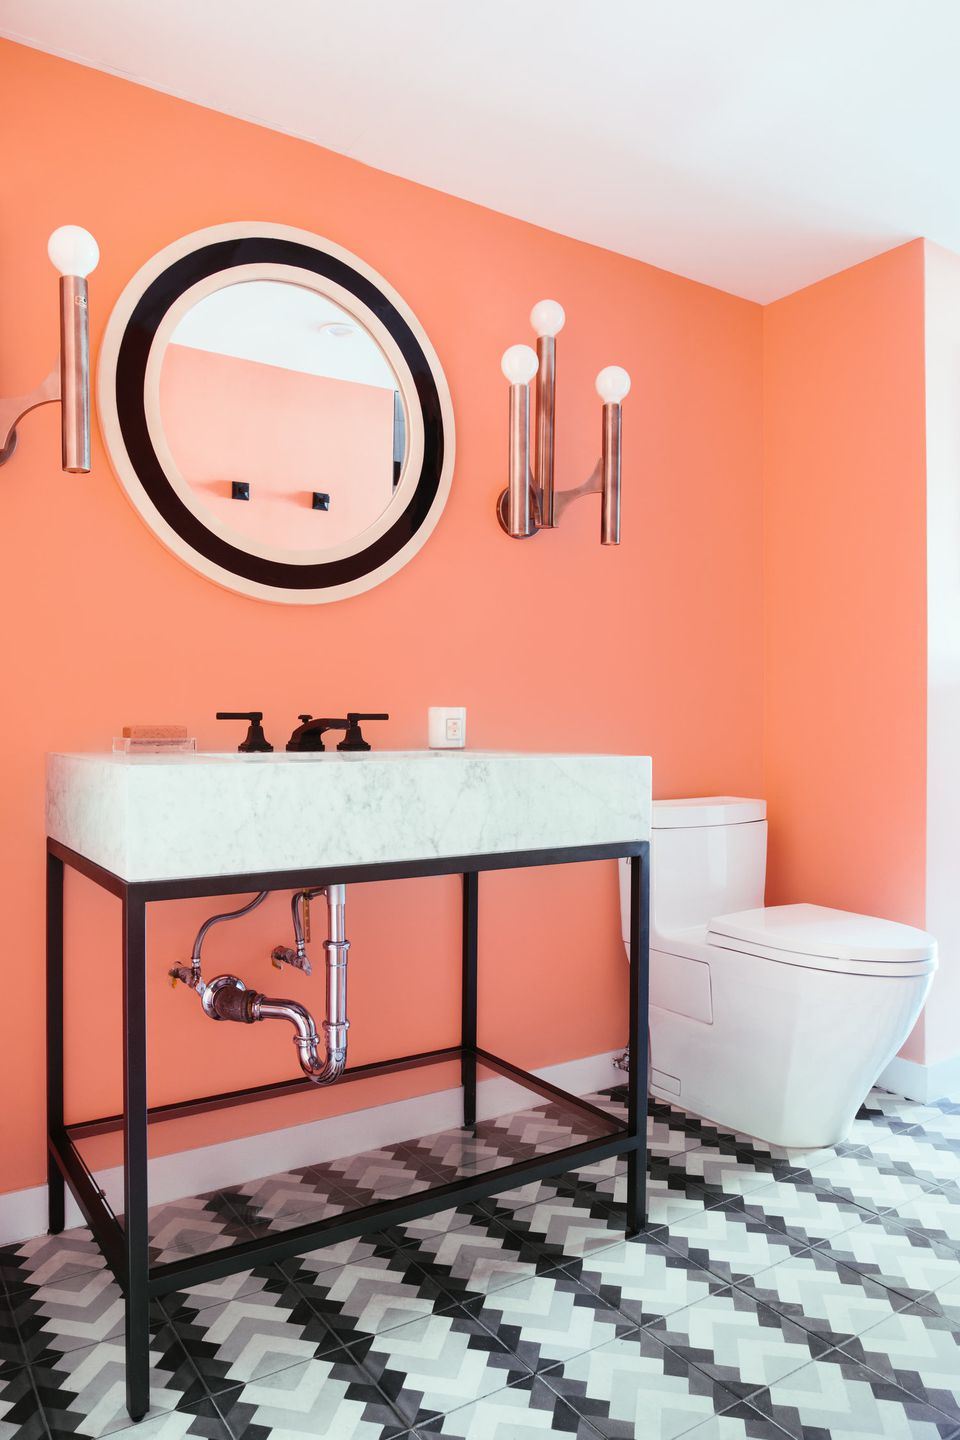 Bathroom with coral walls and black accents